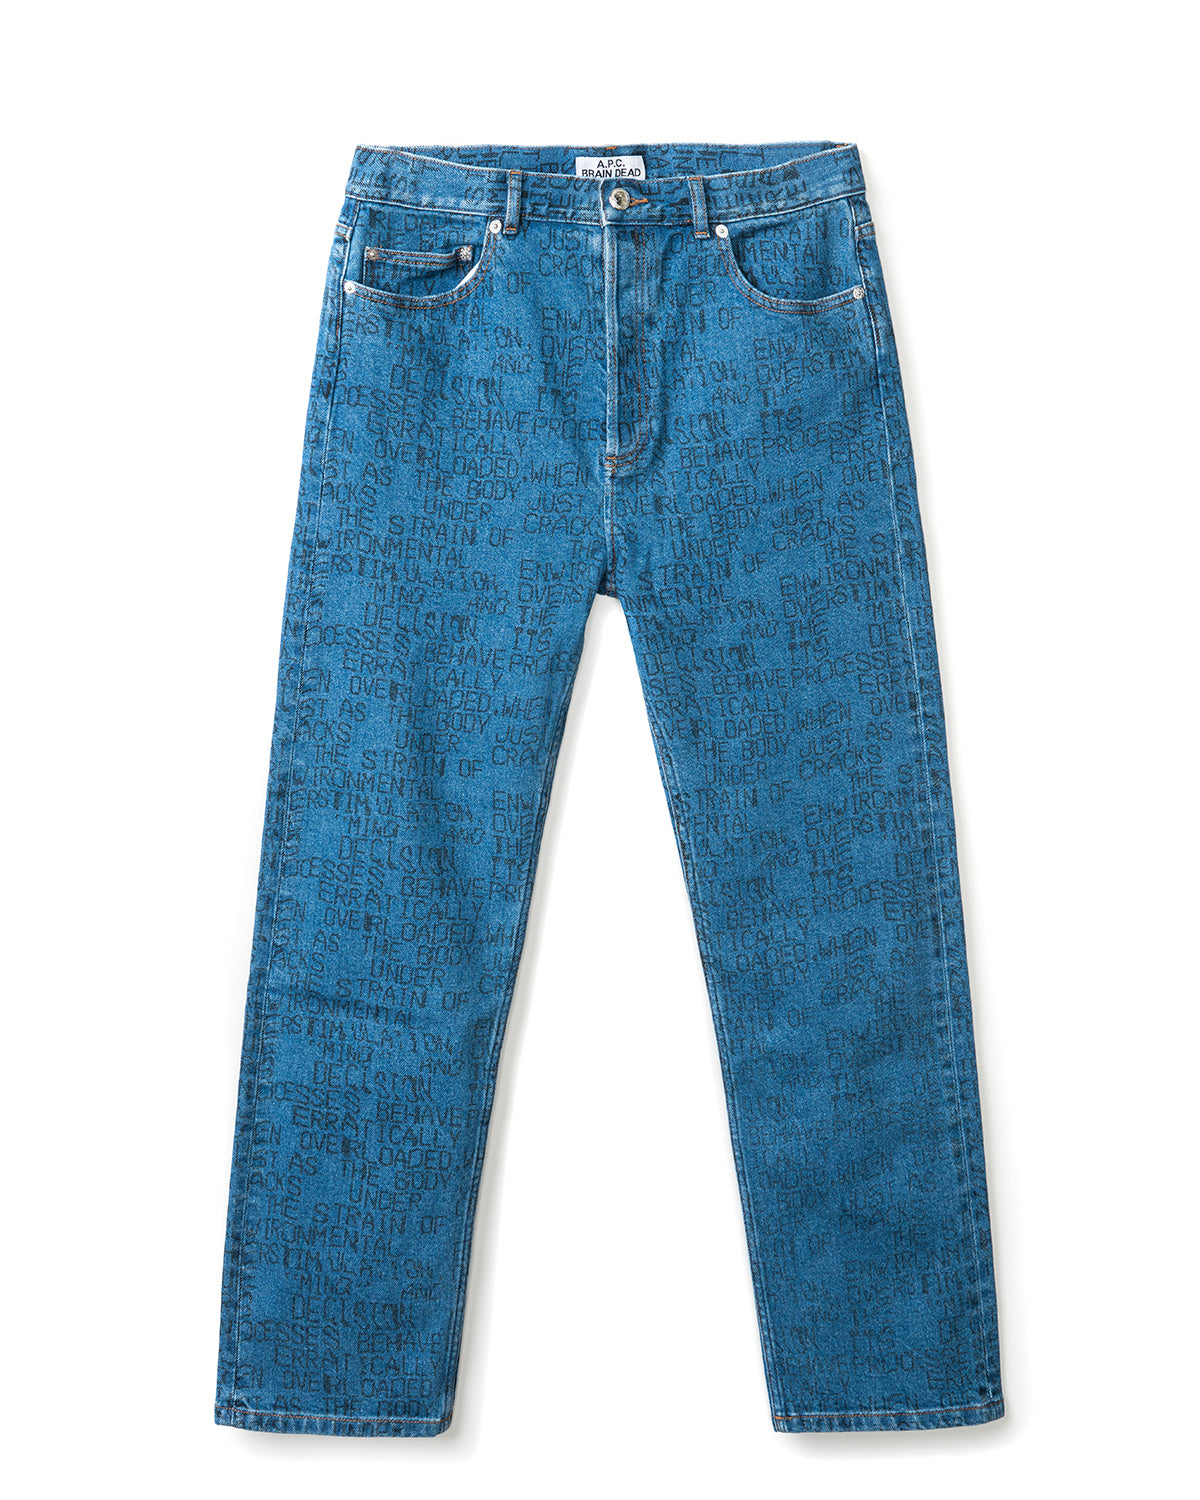 Men's Crypt Japanese Denim Jeans A.P.C. x Brain Dead